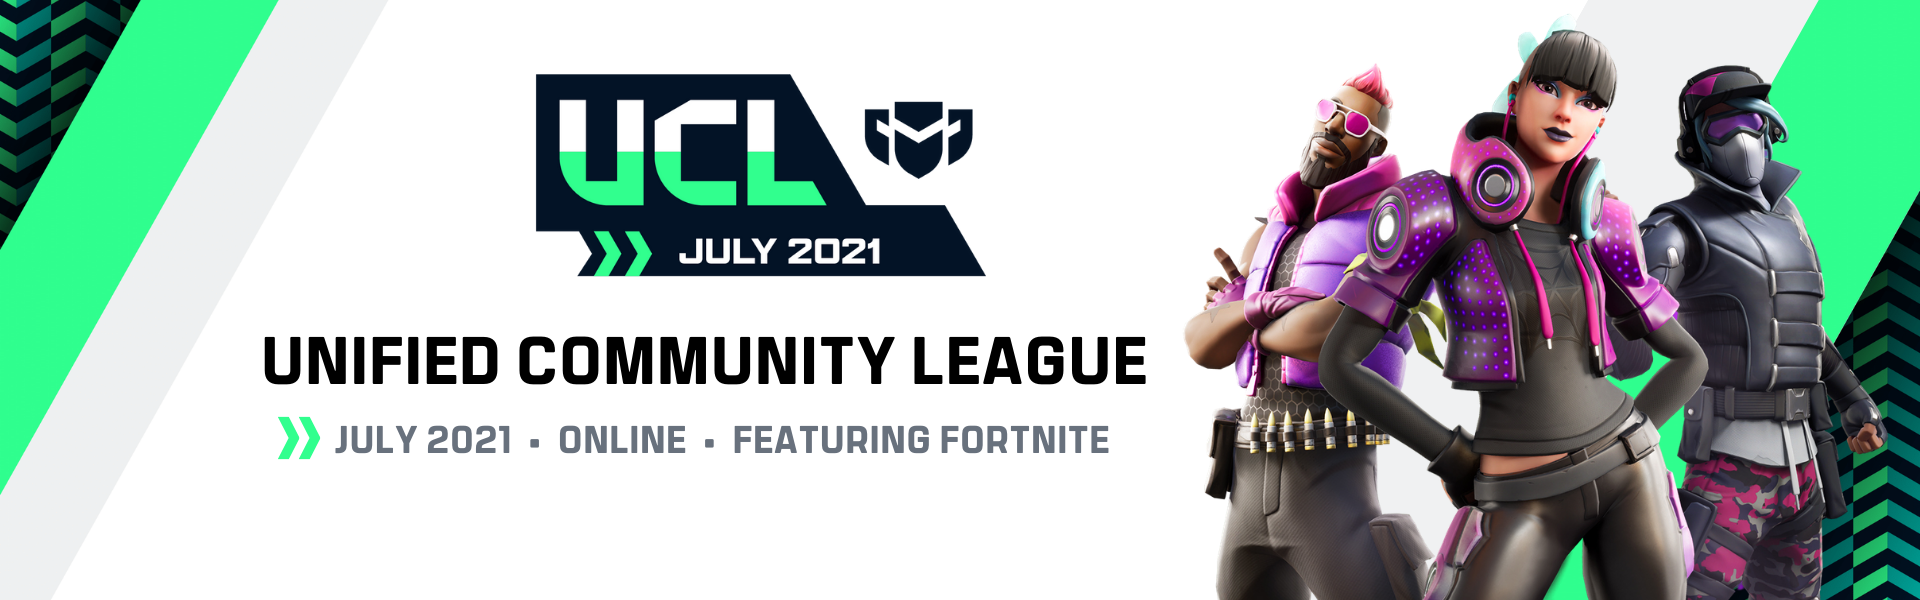 July UCL: Featuring Fortnite